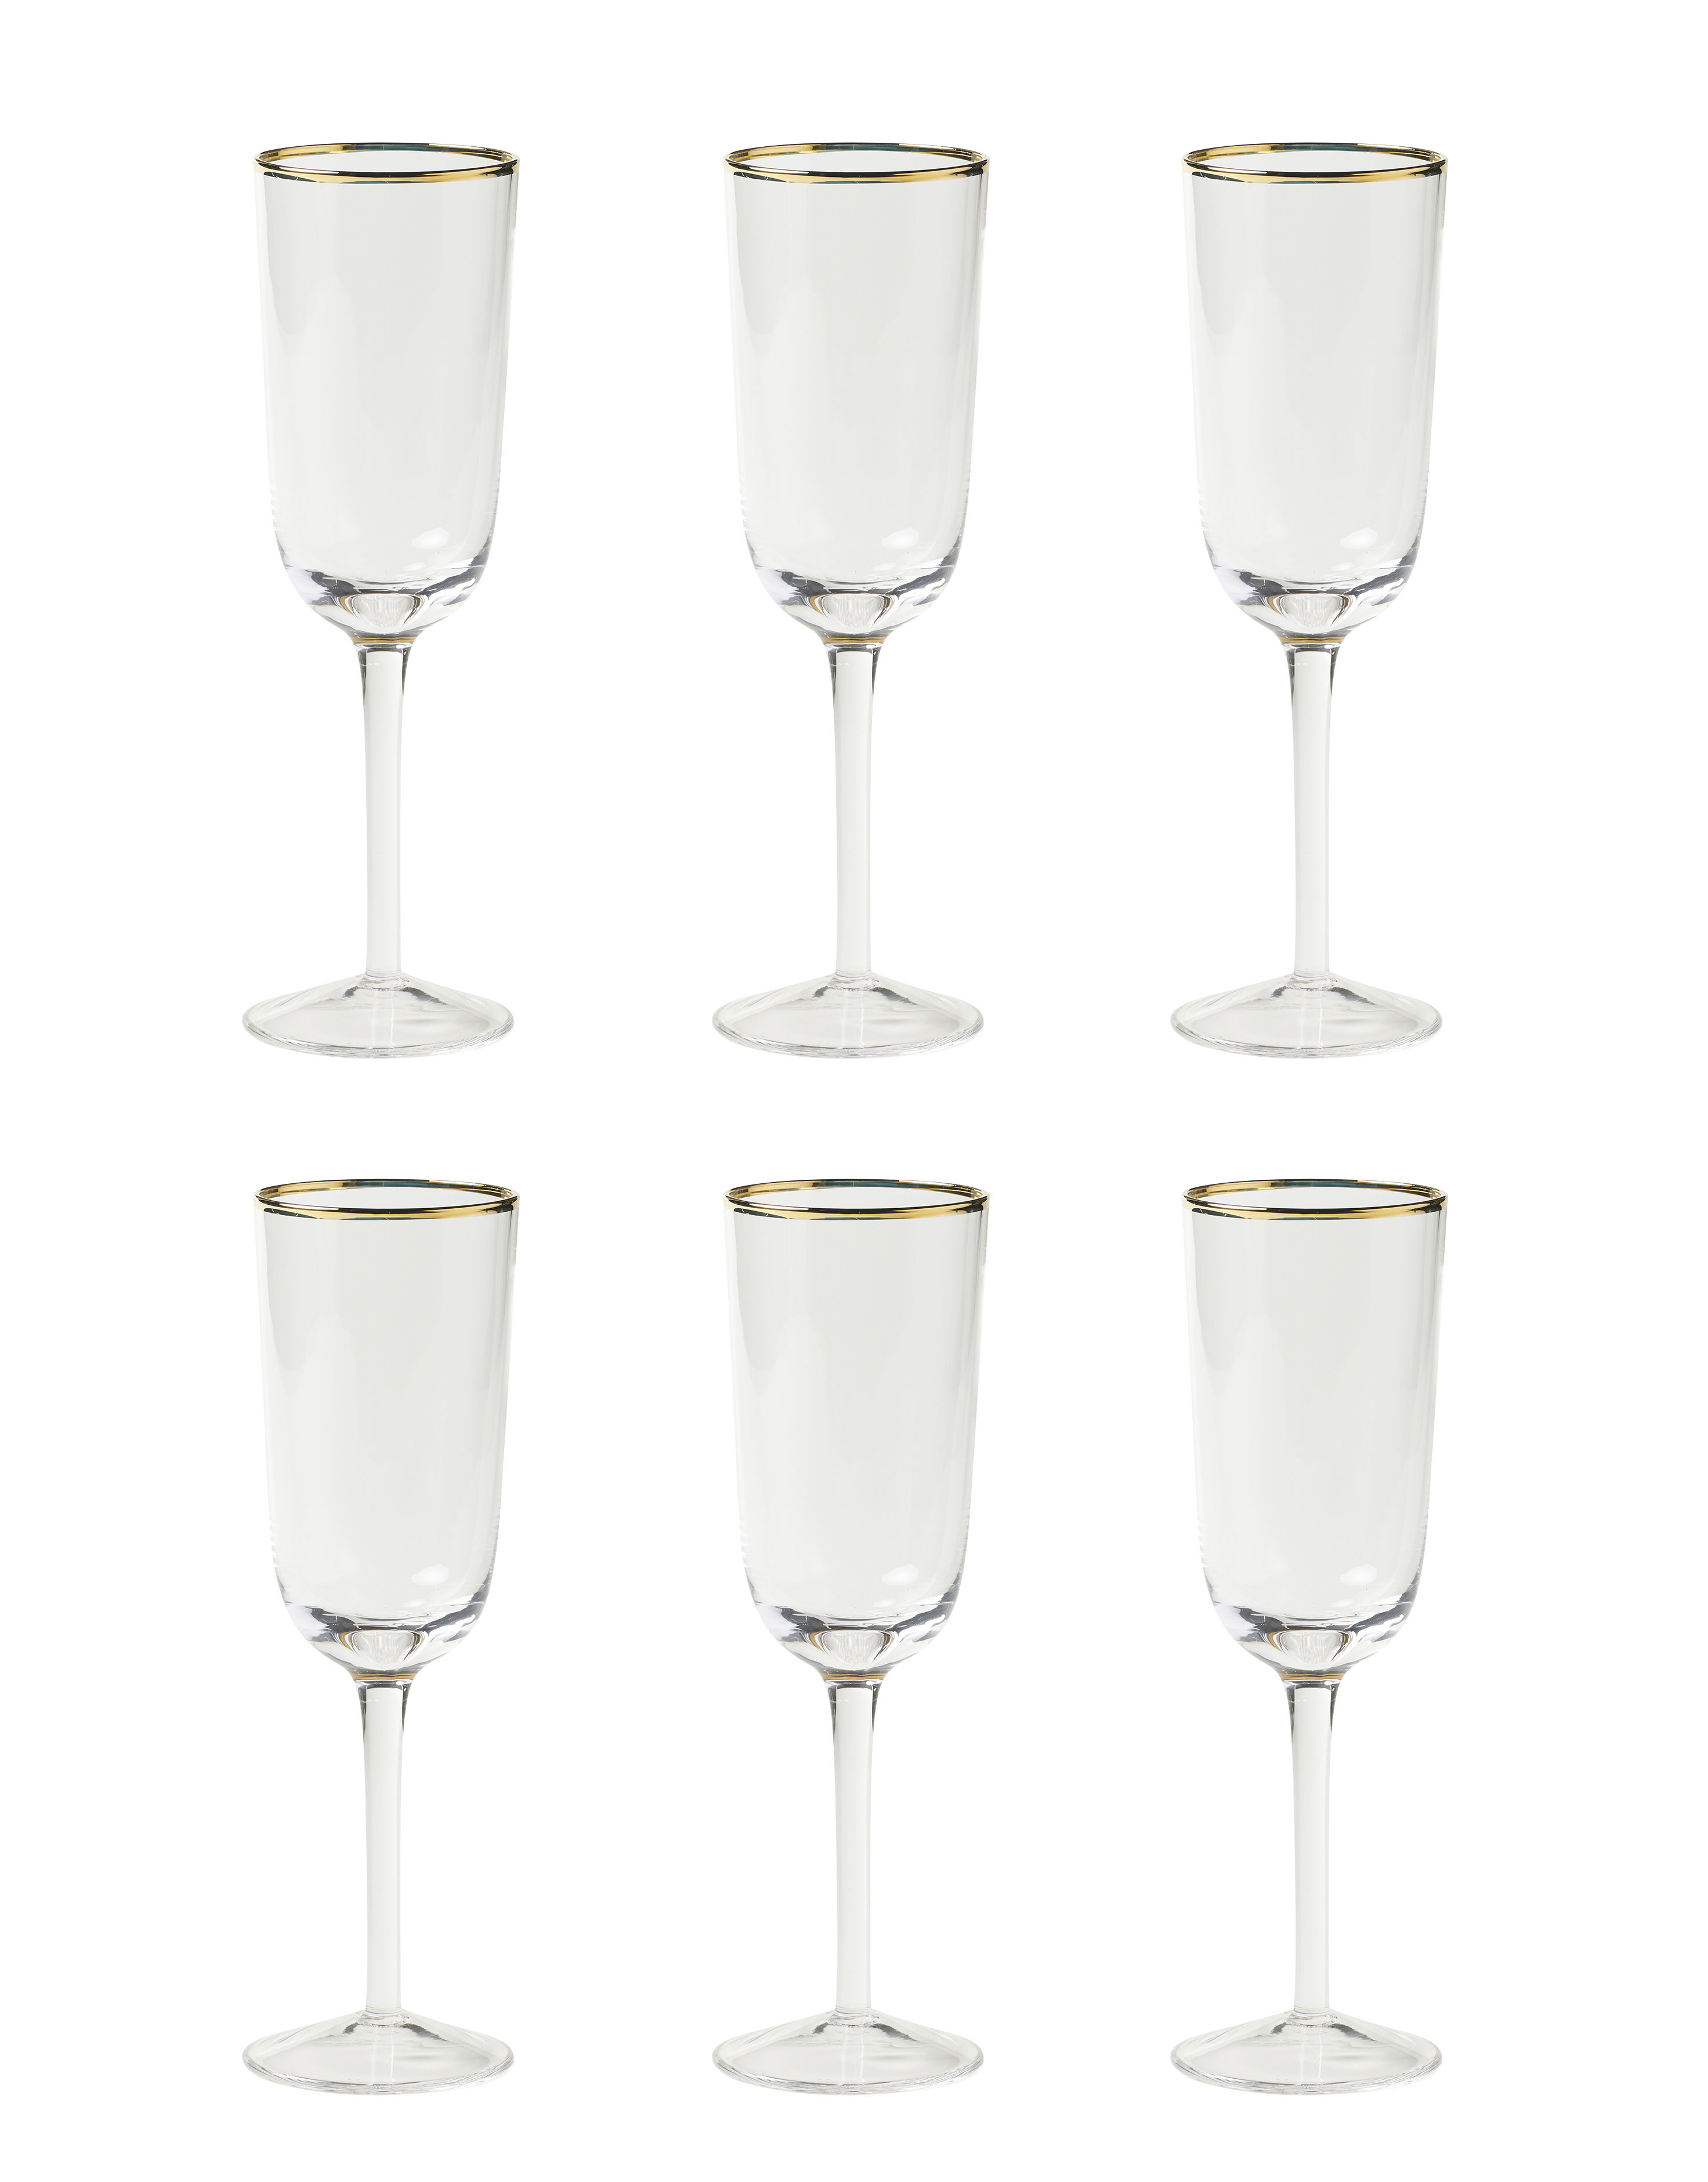 Tableware - Wine Glasses & Glassware - Decò Champagne glass - / Set of 6 - H 19.5 cm by Bitossi Home - Transparent - Blown glass